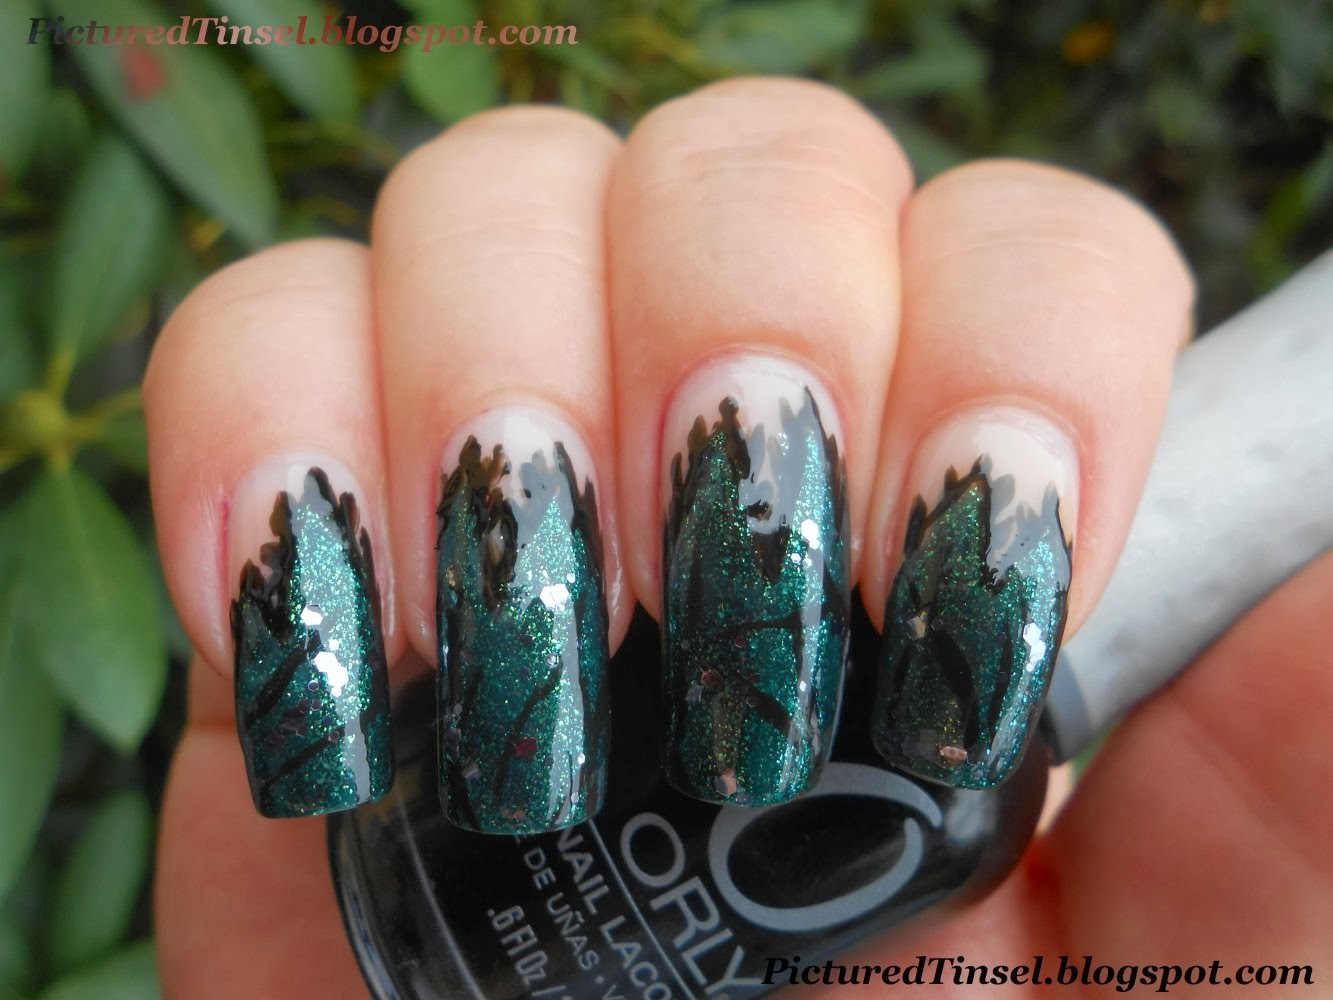 PicturedTinsel: Hexen-French - Witch\'s French [Halloween Nail Art]